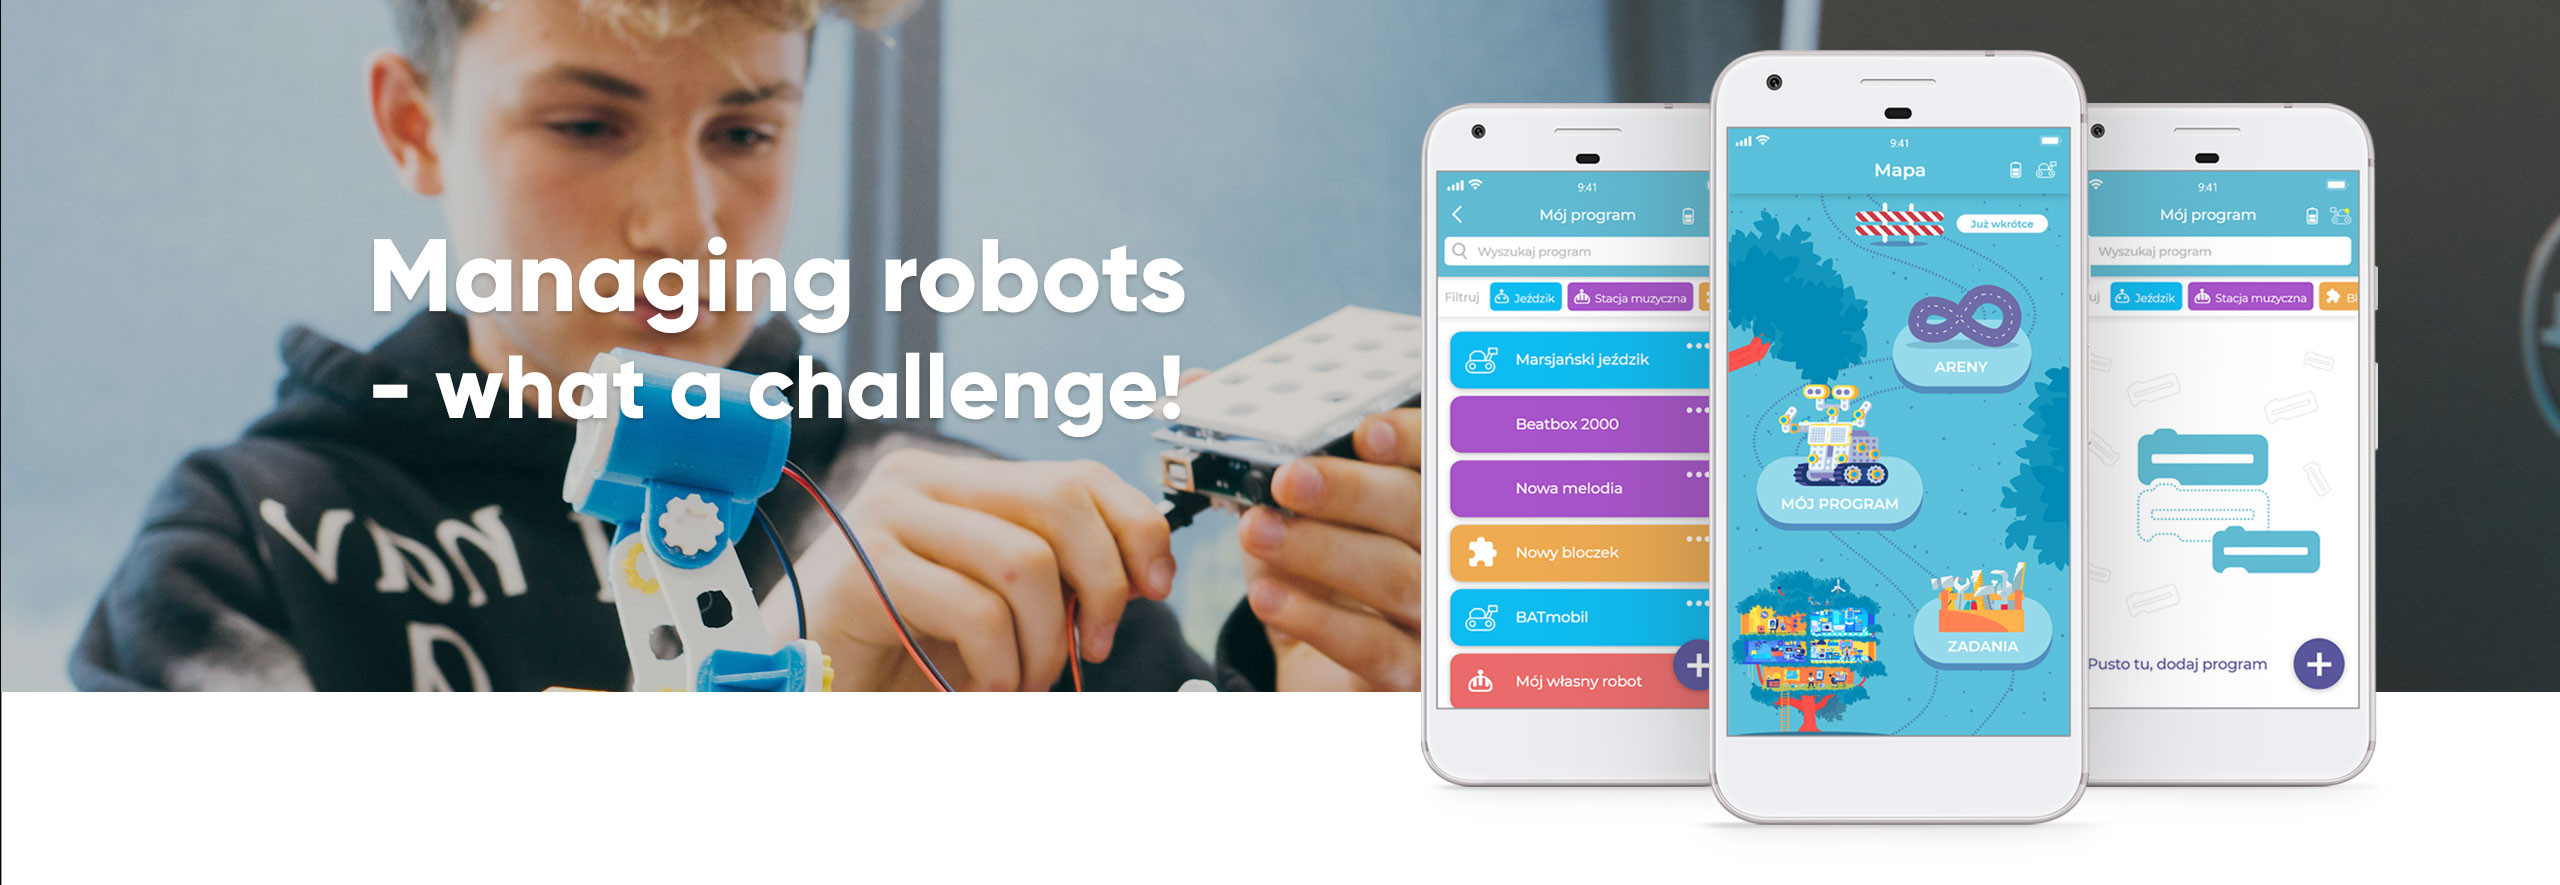 Managing robots - what a challenge!